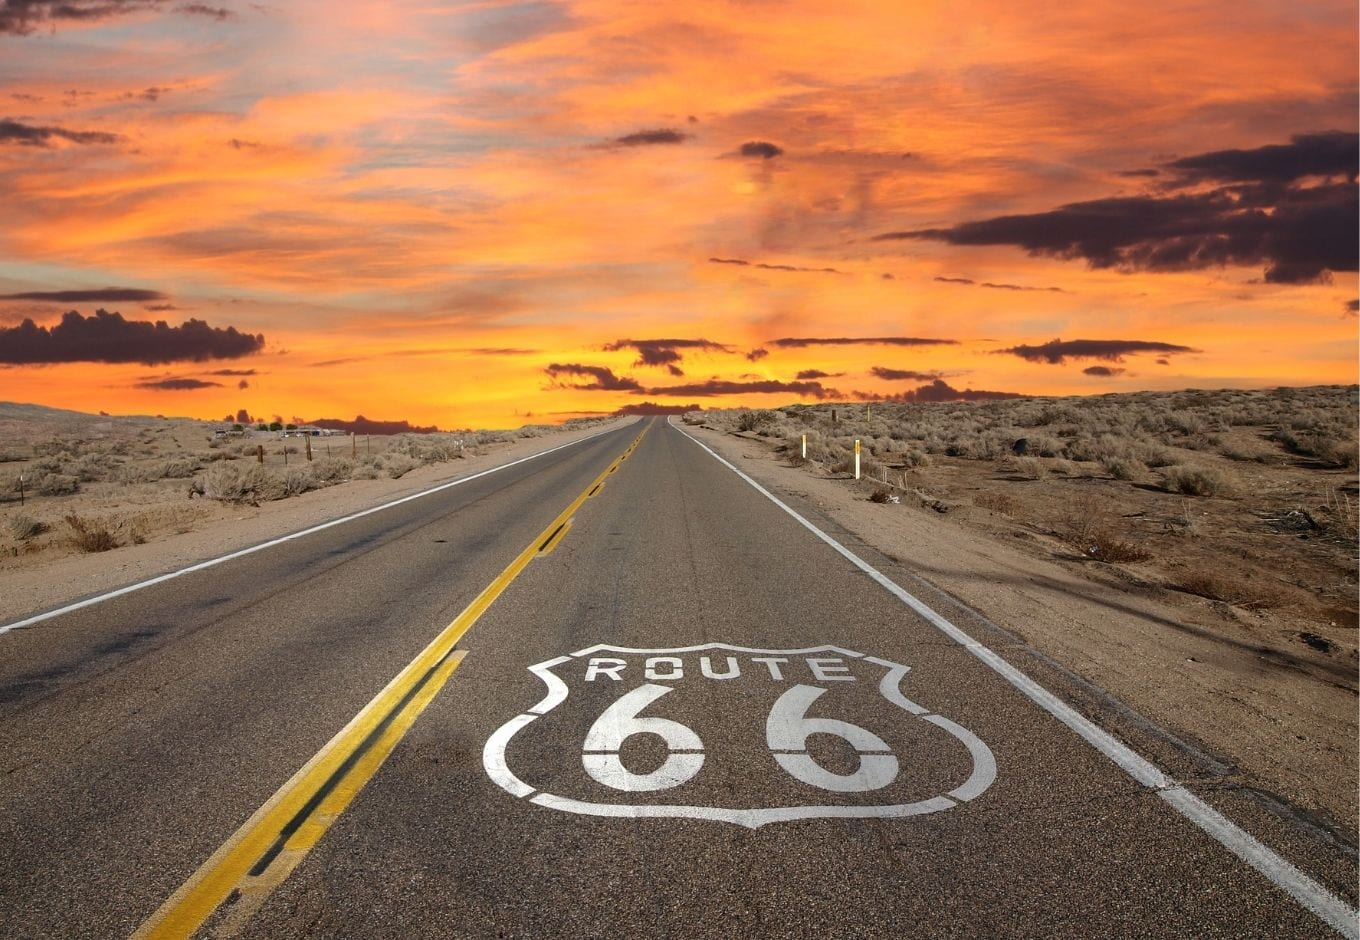 The route 66 during an orange sunset.